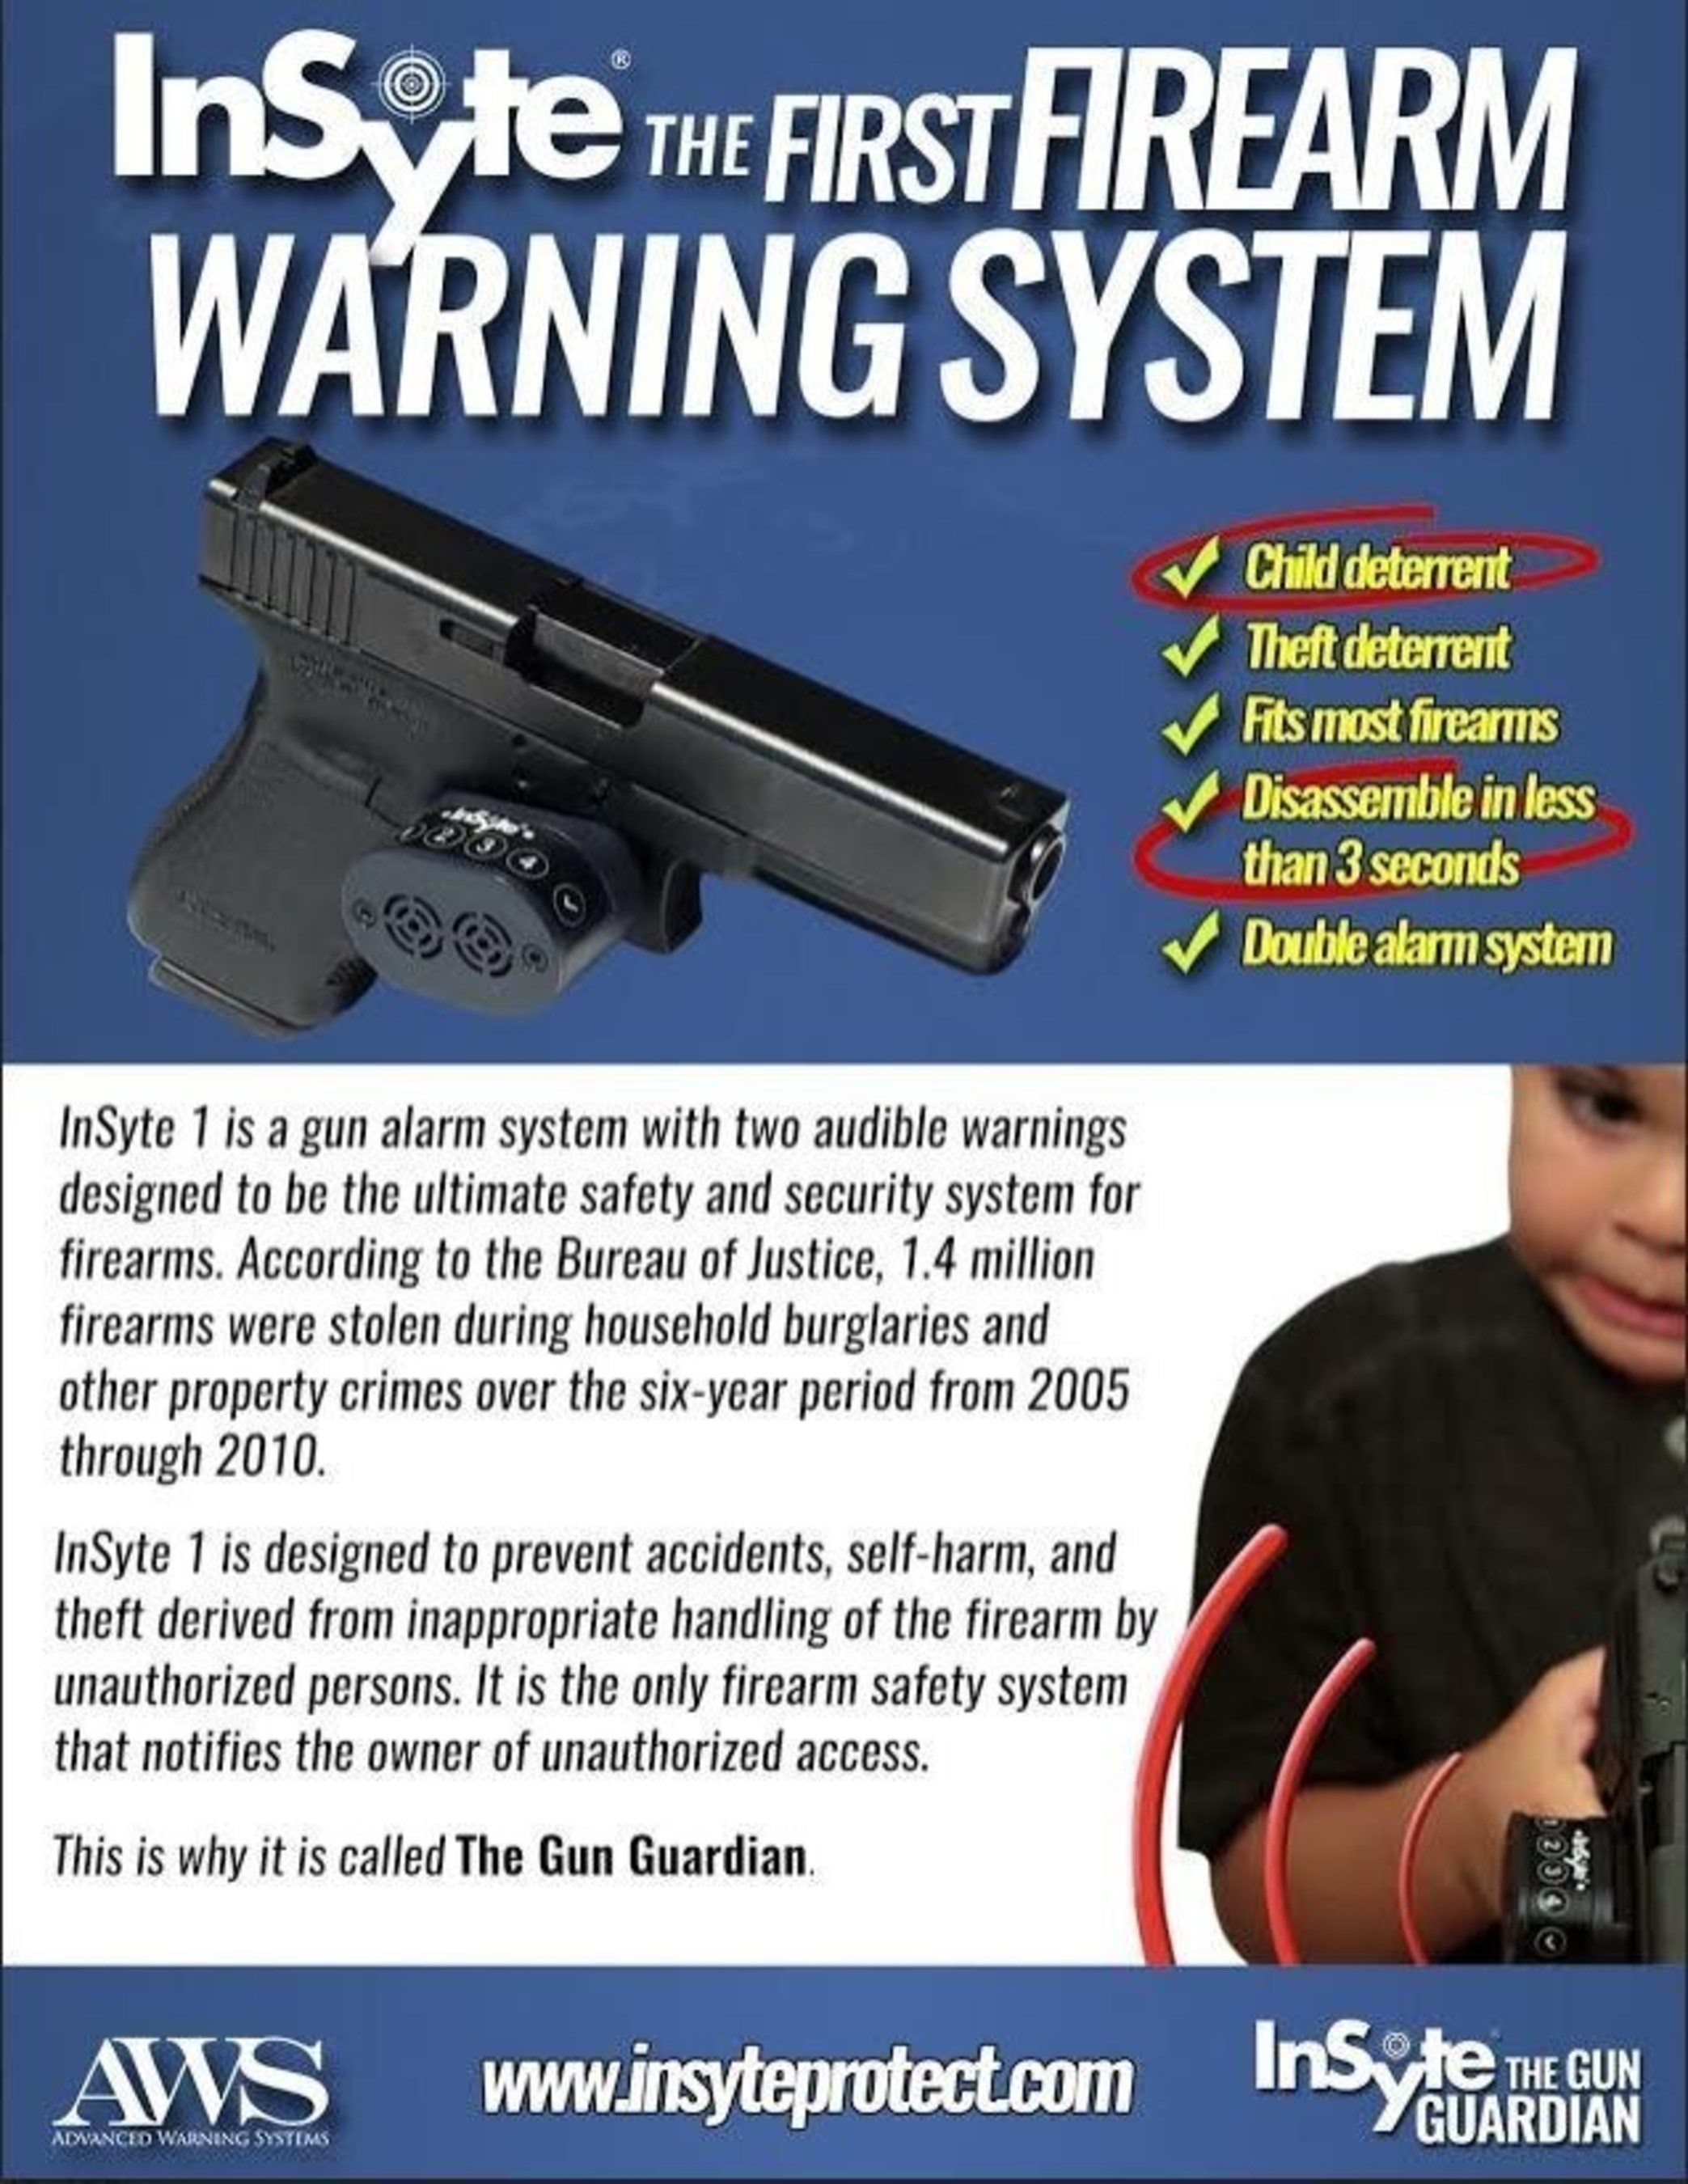 InSyte, the First Firearm Warning System